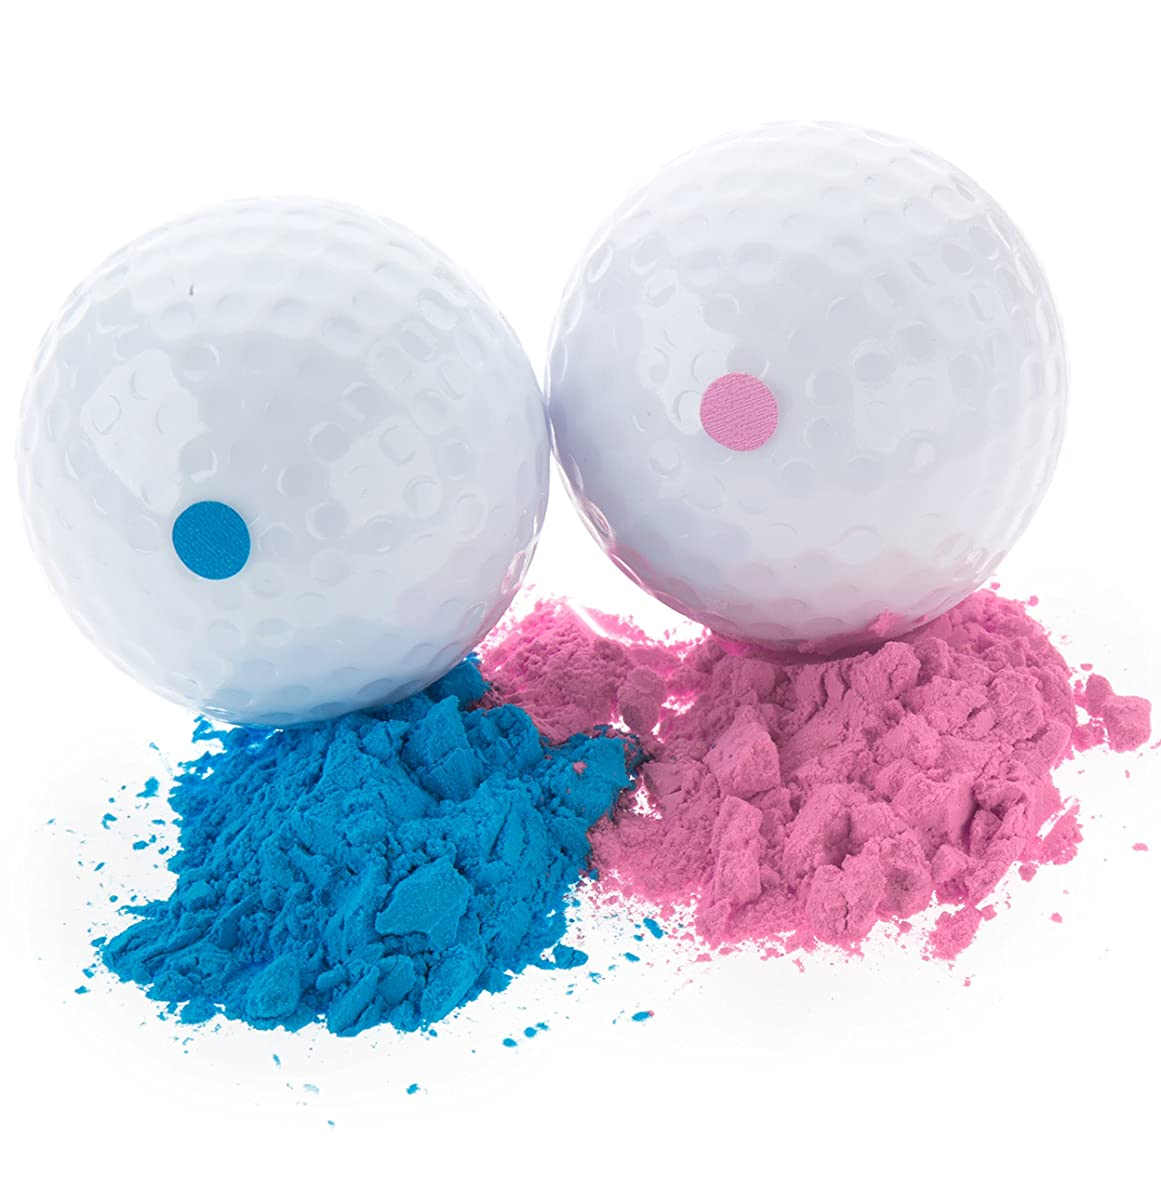 Baby Gender Reveal Exploding Golf Balls - Pink and Blue Set for Boy or Girl Gender Reveal Party (1 Pink Ball and 1 Blue Ball)